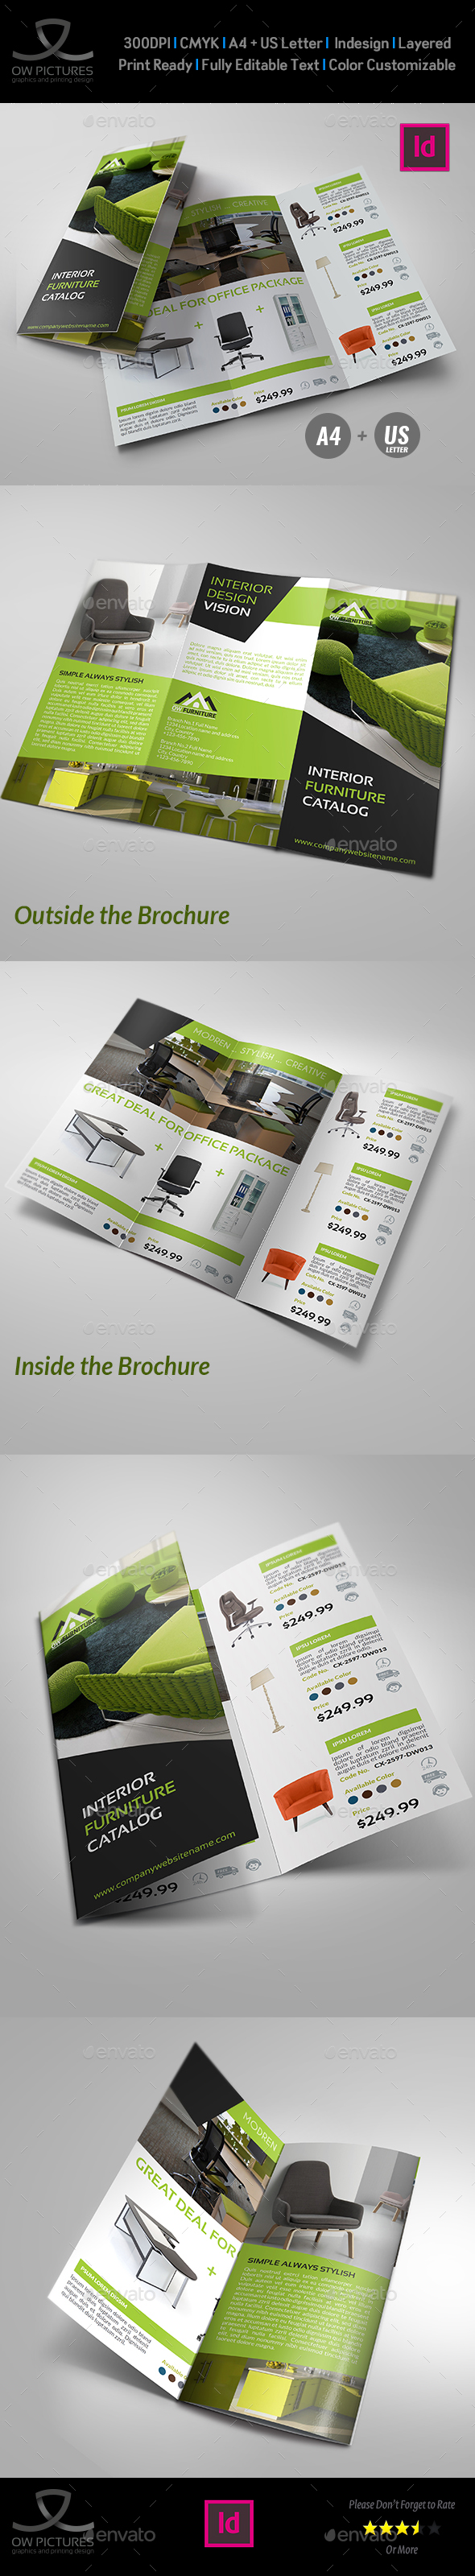 Furniture Products Catalog Tri-Fold Brochure - Catalogs Brochures